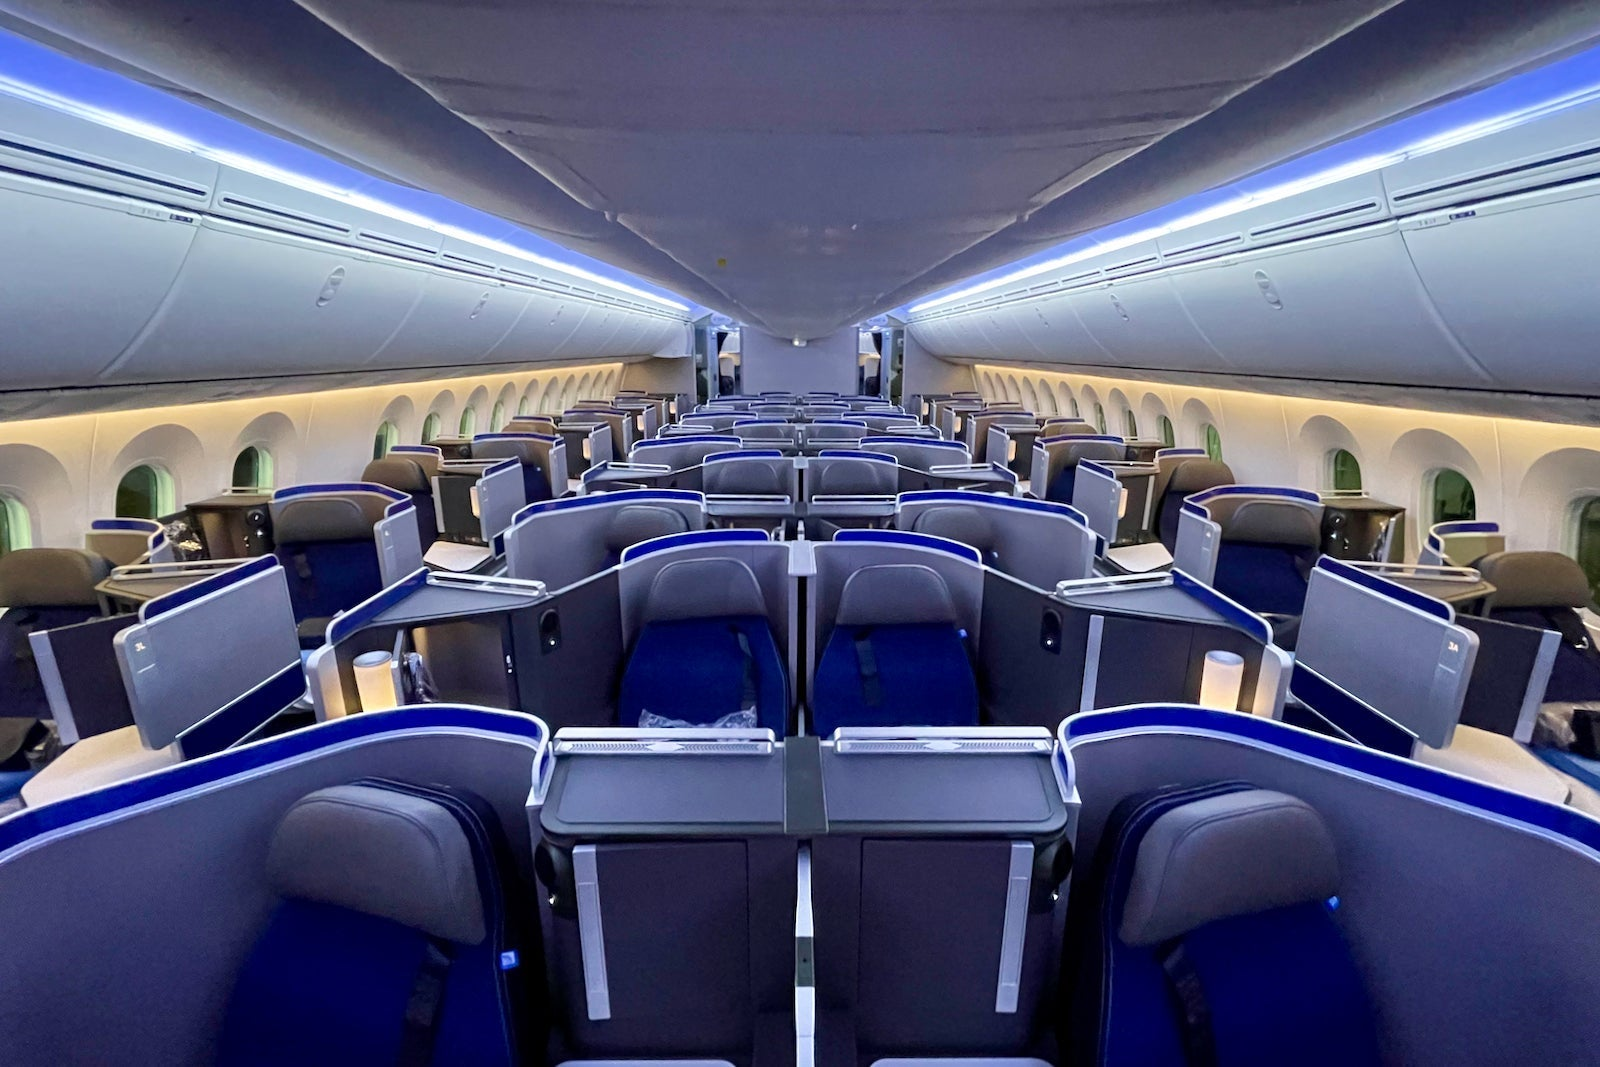 United Airlines has an 'expert mode' - Here's how and why to use it - The Points Guy